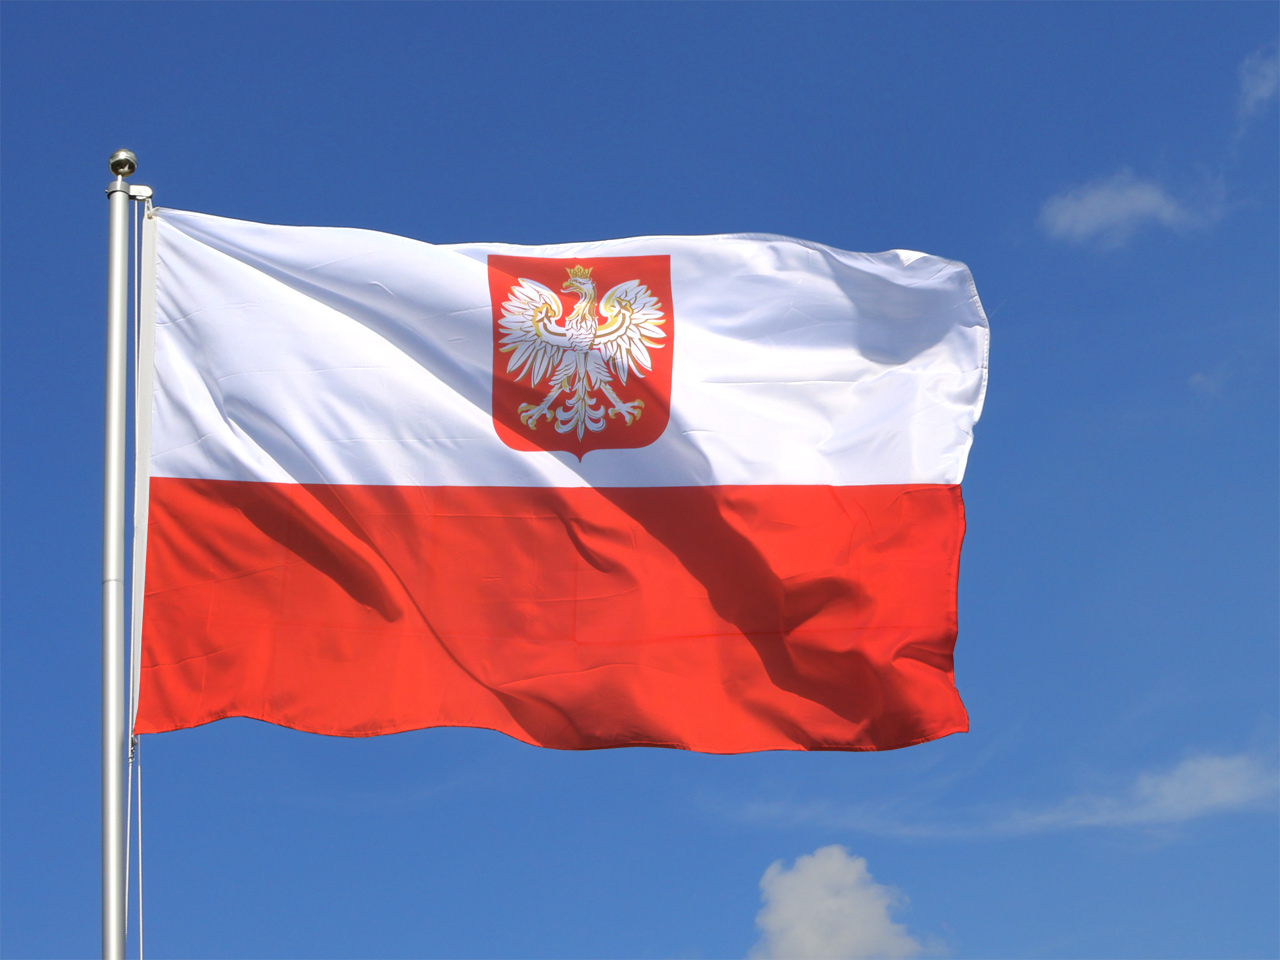 Debt recovery in Poland through TCM